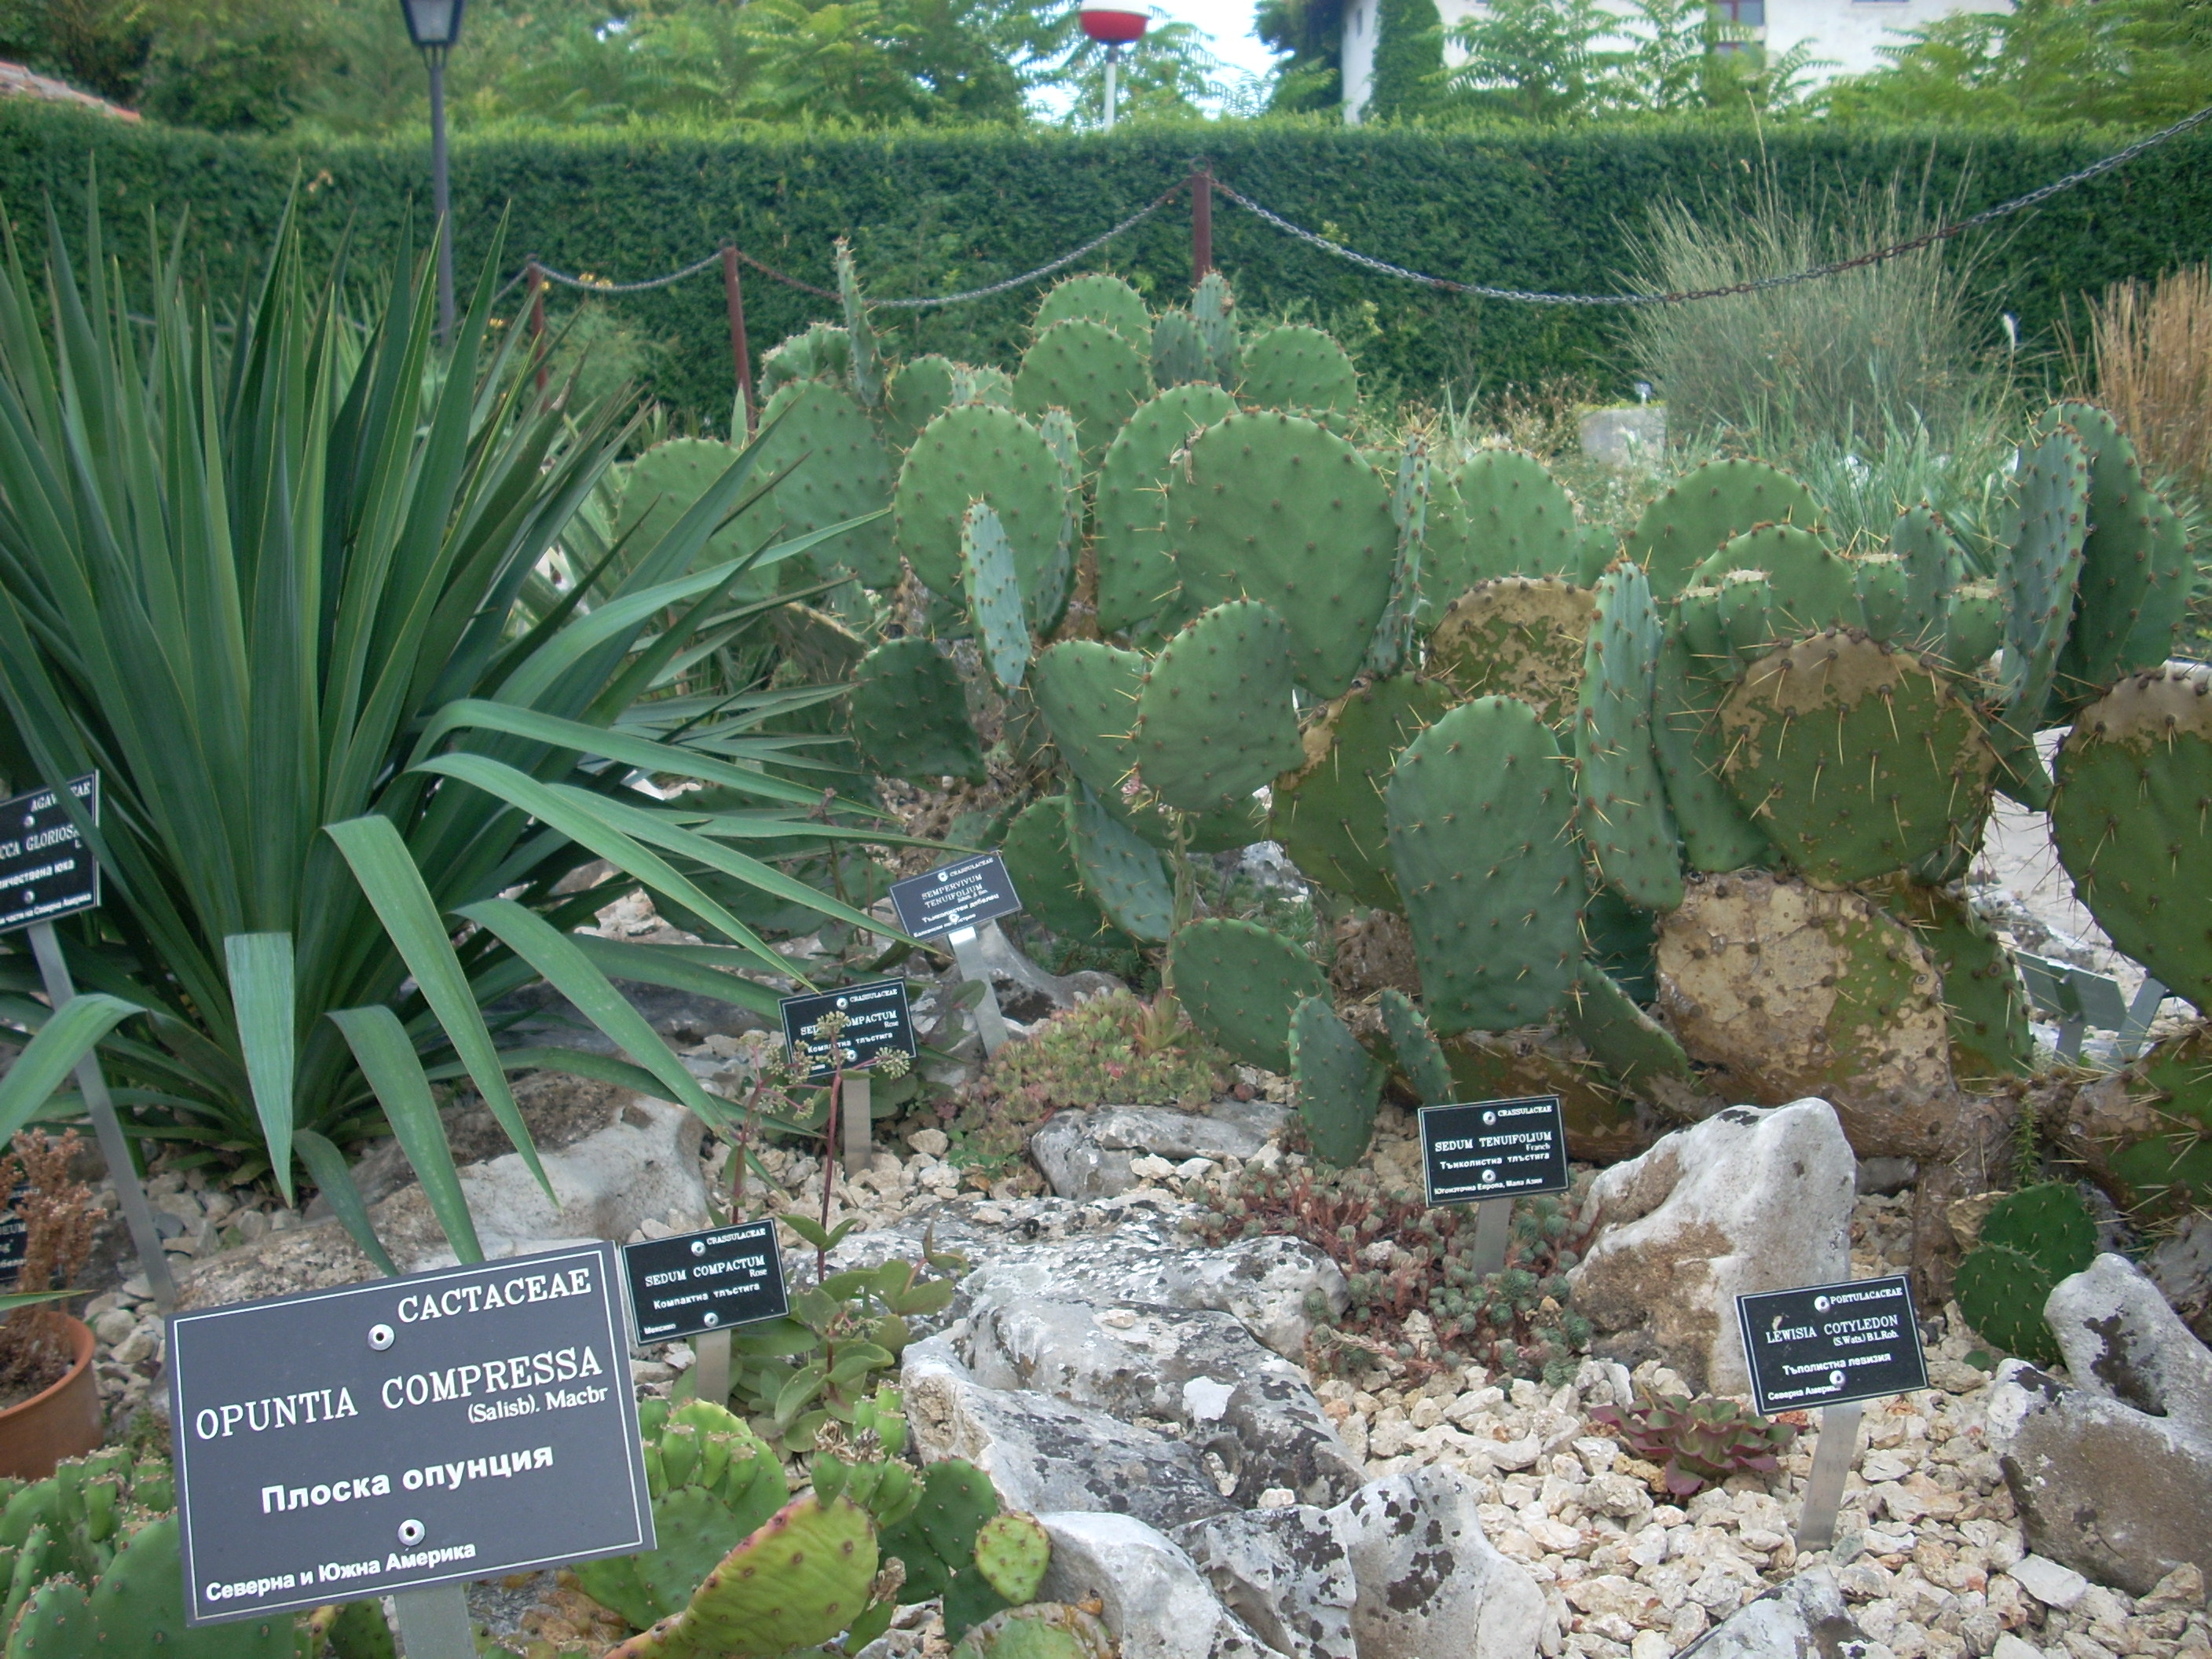 Balchik-Botanical-garden-cactuses-second-largest-europe-collection-of-cactuses-in-Bulgaria